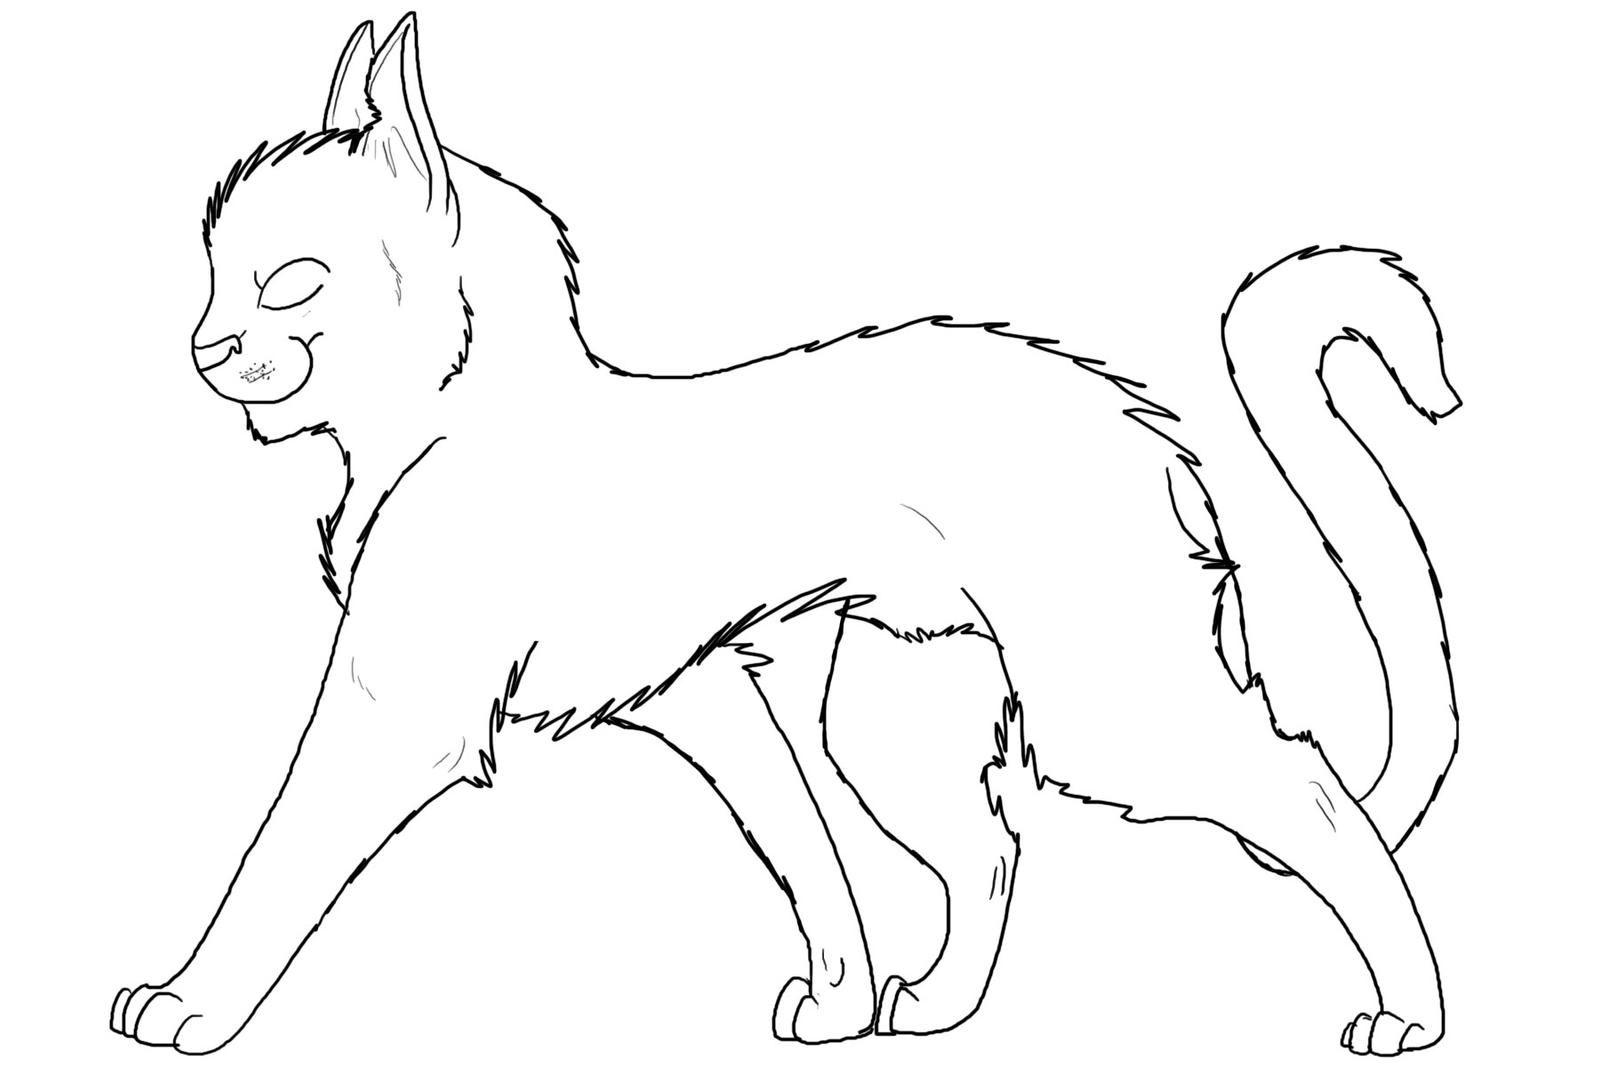 Another Cat Outline by Alibi-cat on DeviantArt